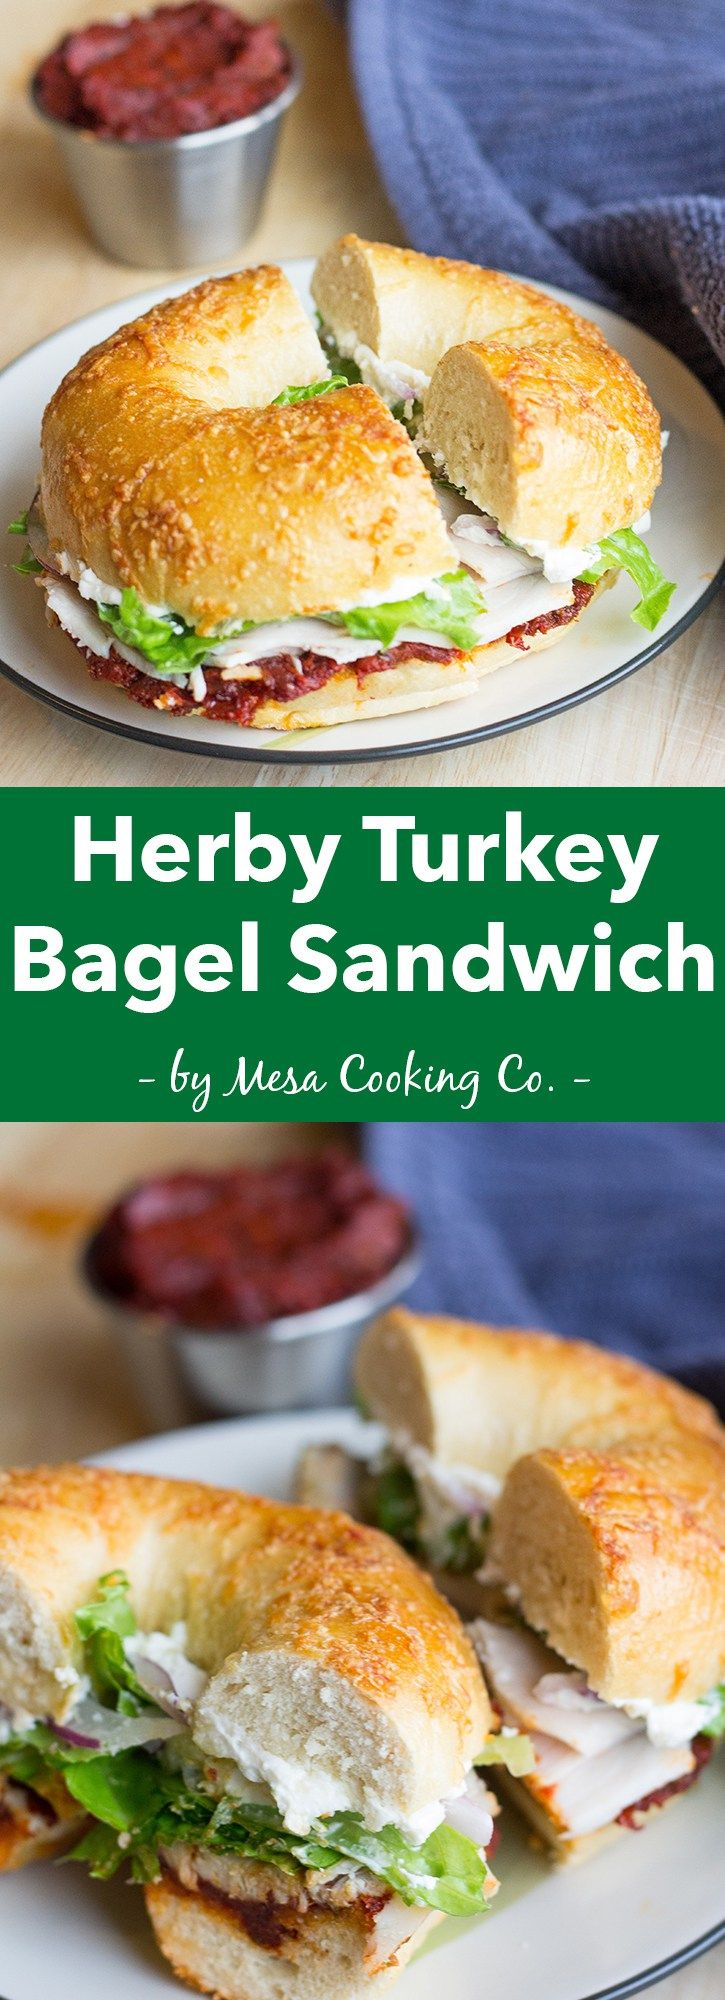 Herby Turkey Bagel Sandwich with Sun-Dried Tomato Spread // Inspired by my favorite sandwich from my favorite bagel shop - now you can make it at home! // www.mesacookingco.com